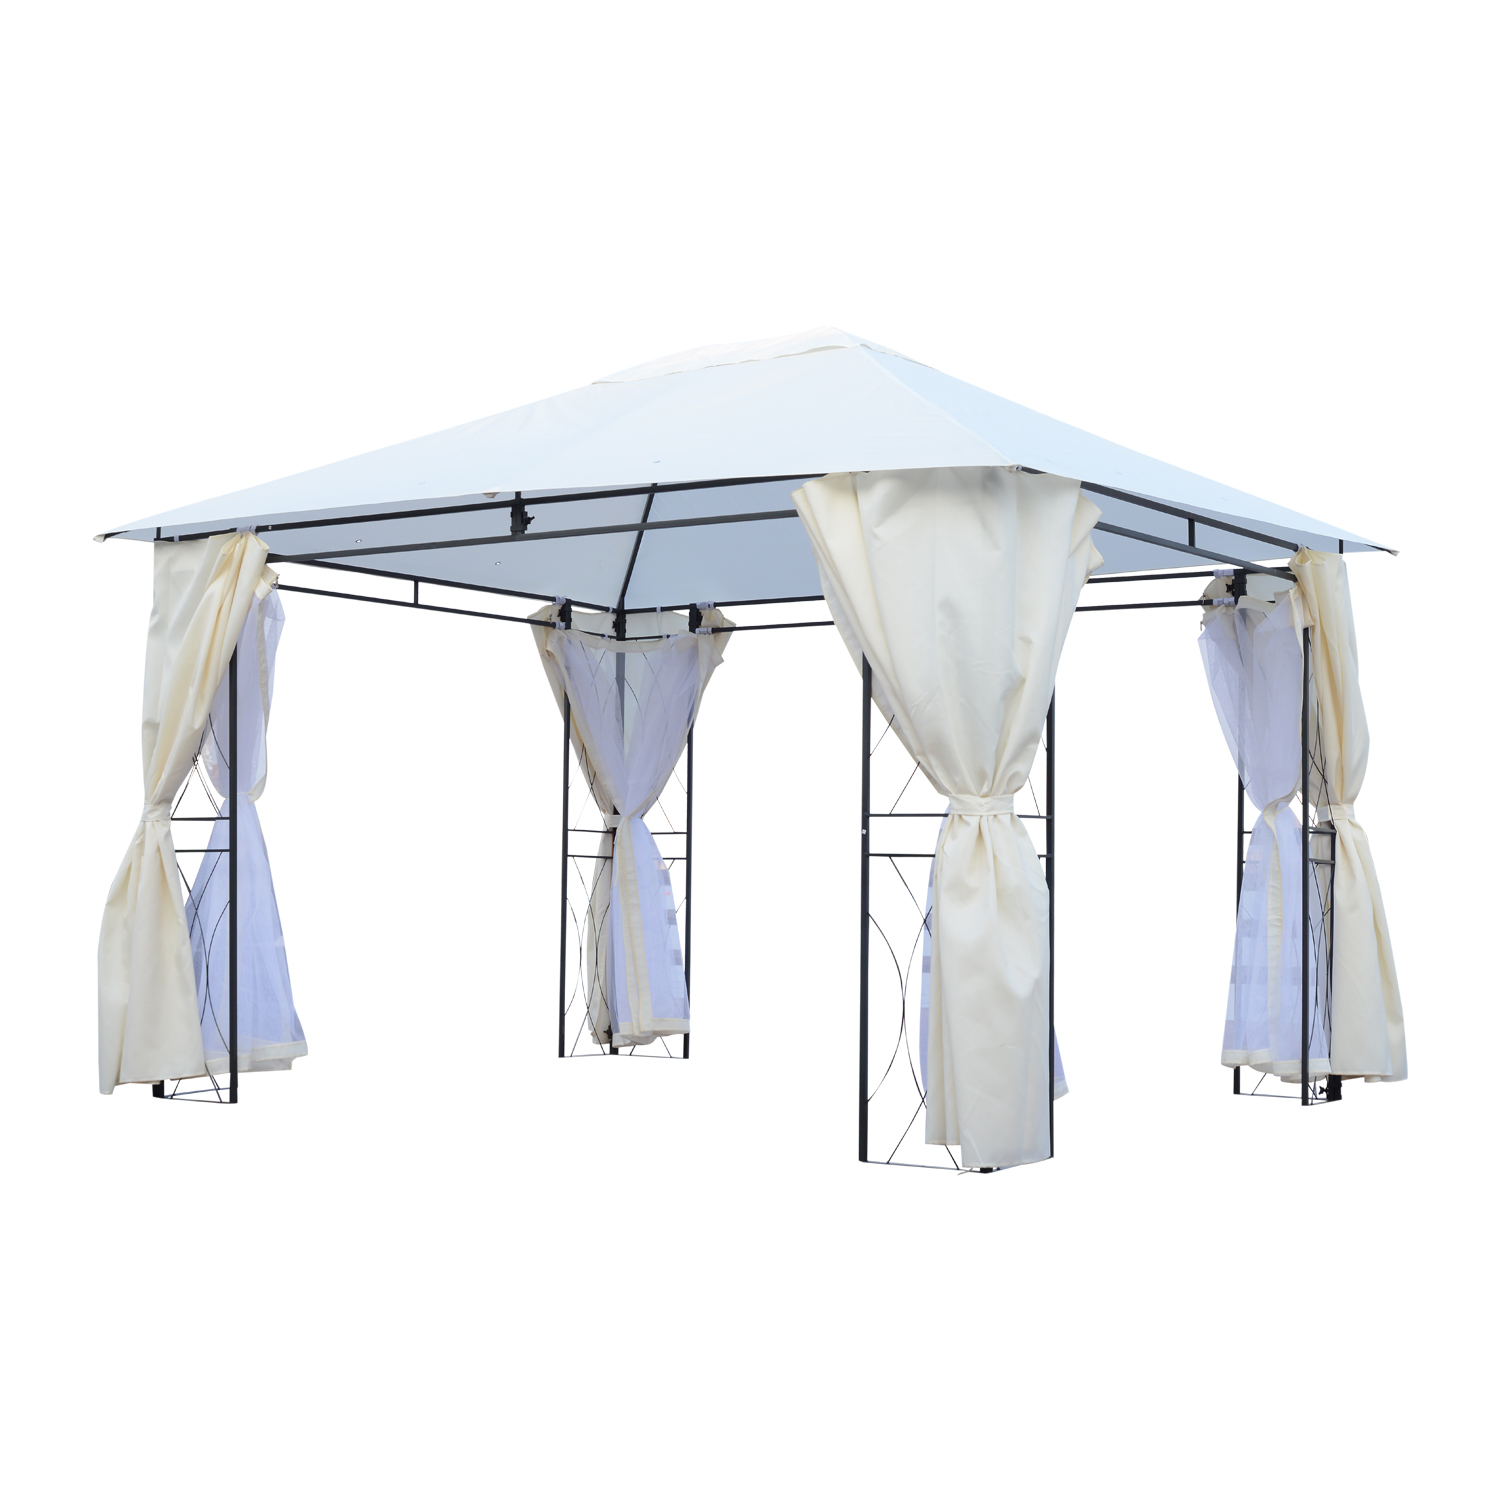 Outsunny Gazebo Marquee With Mosquito Net Waterproof With 8 Outdoor Garden Polyester And Iron Drain Holes 3x4 M Cream